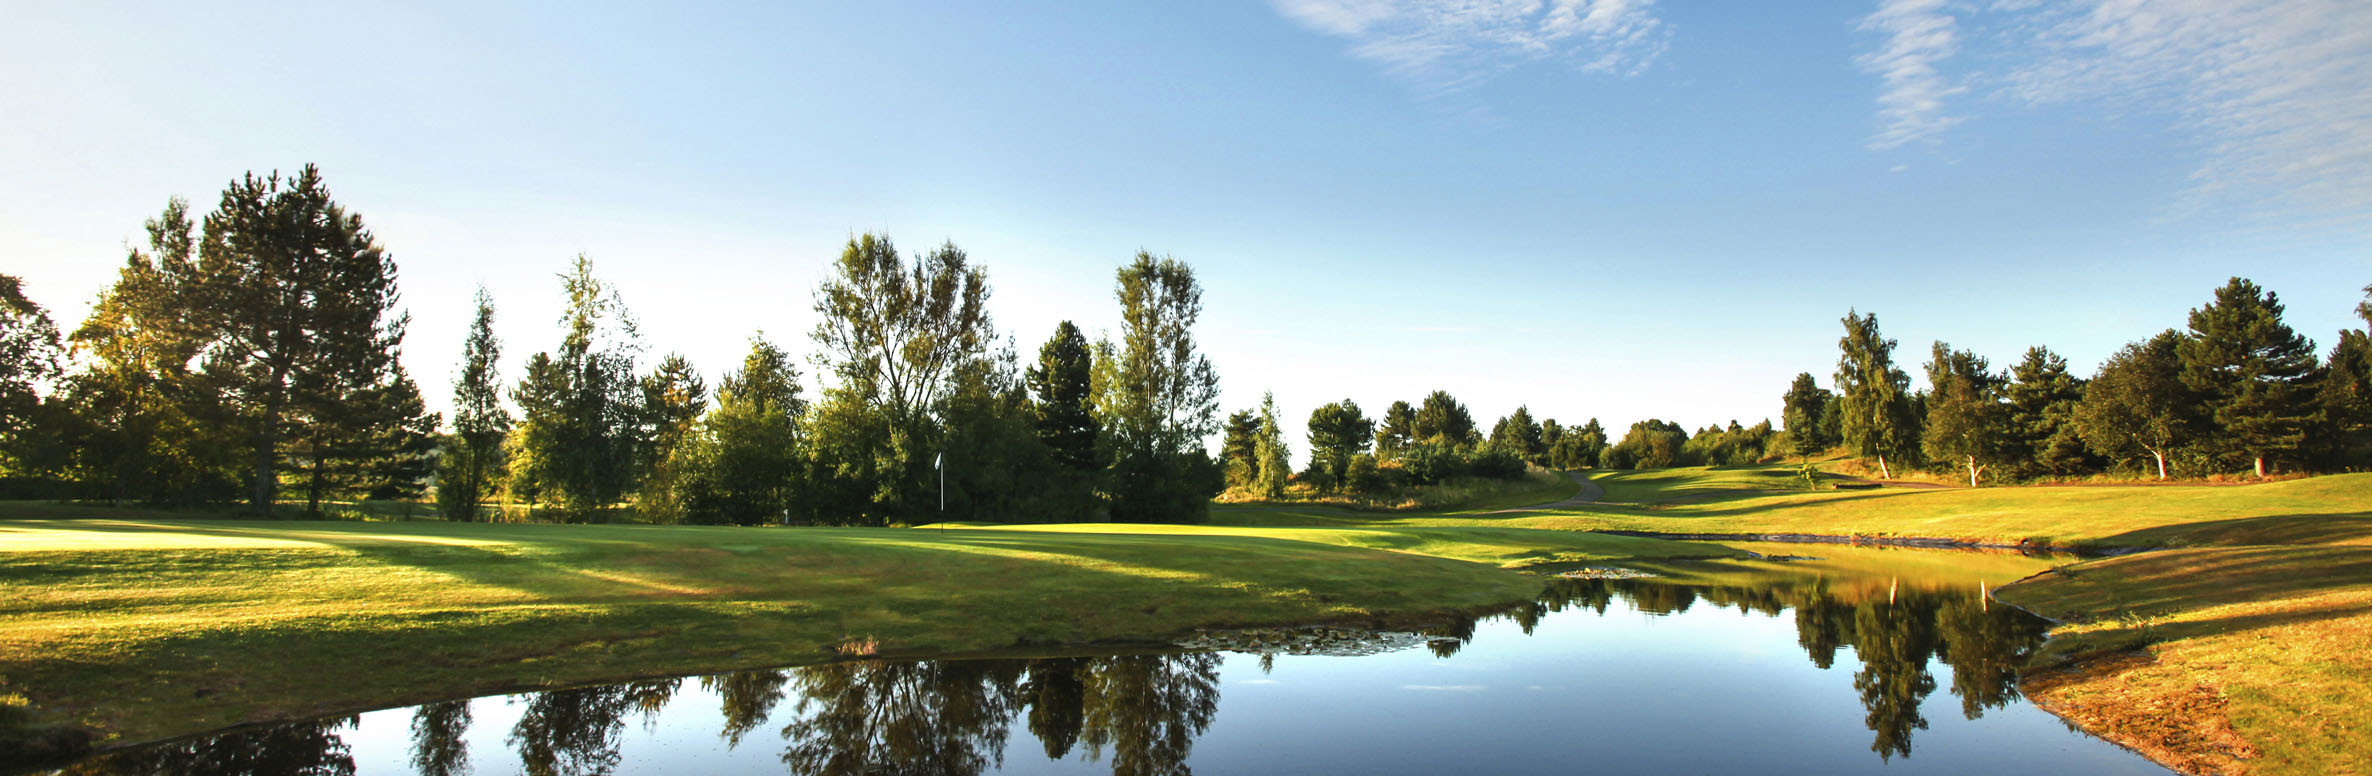 Golf Course Image - Essendon Country Club New Summer No. 8